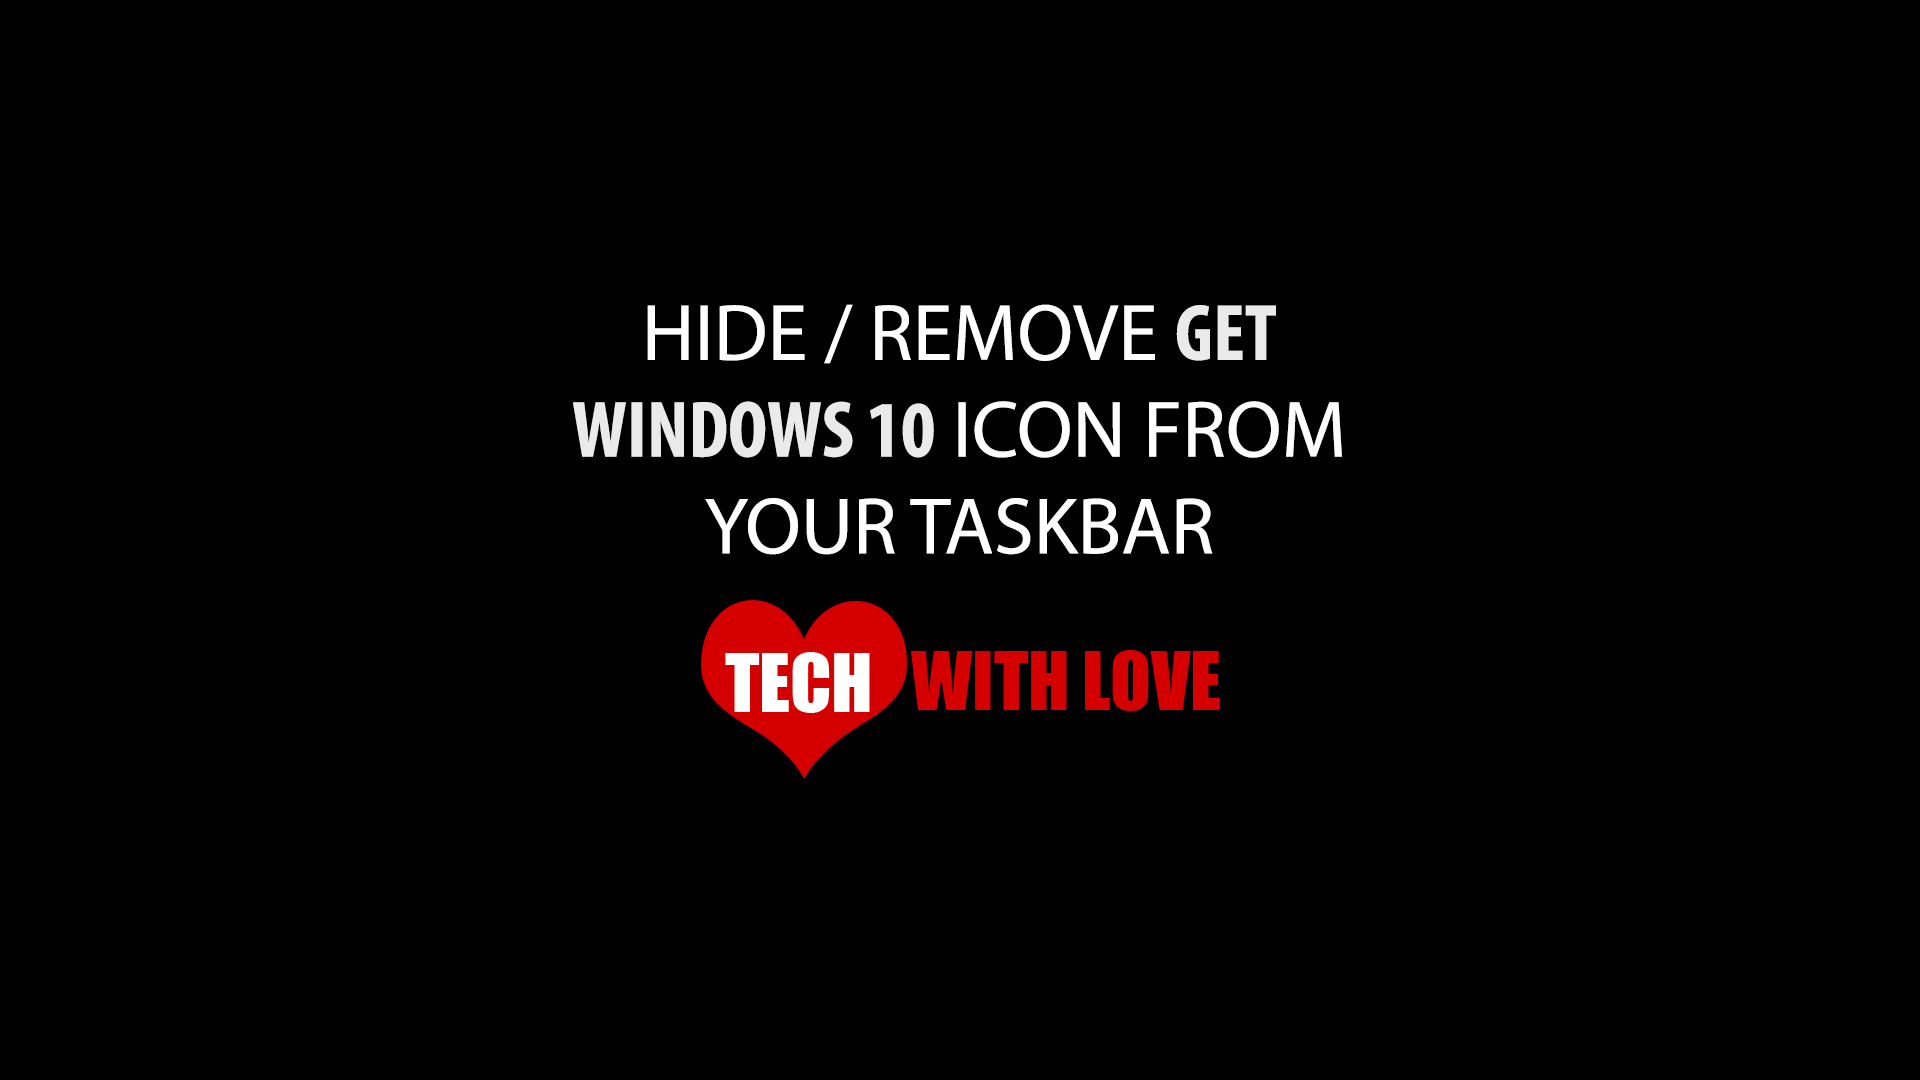 Hide or Remove Get Windows 10 Icon from Taskbar